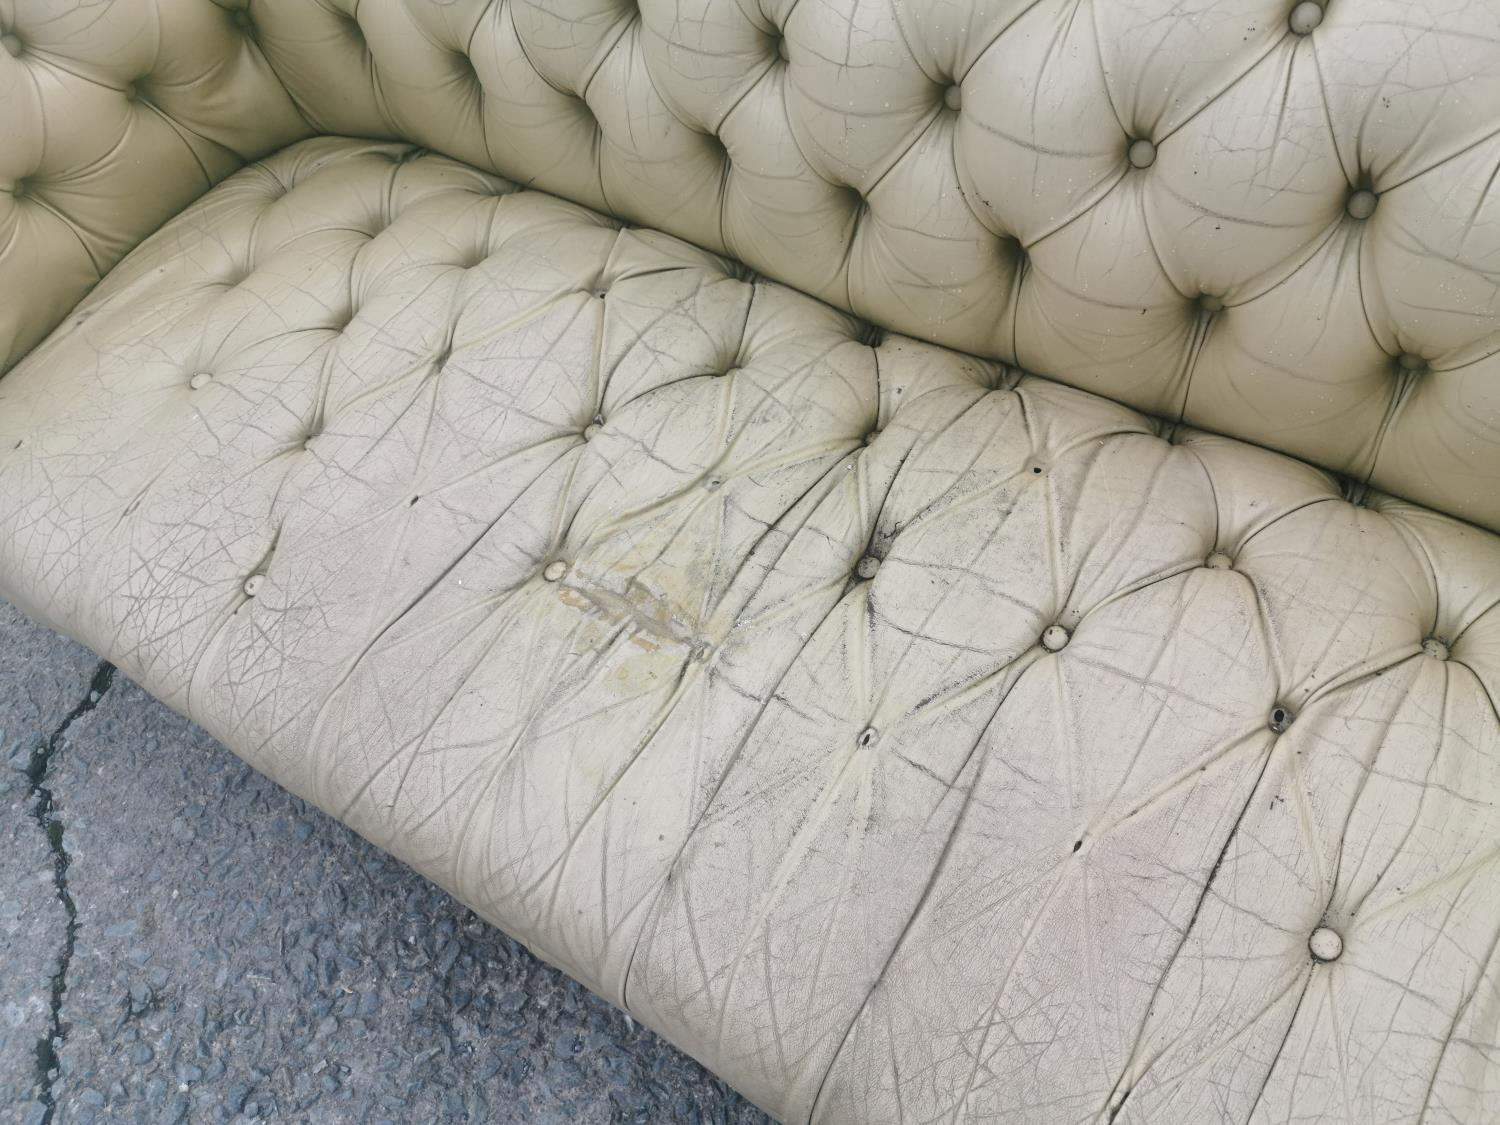 Pale green leather upholstered Chesterfield couch - Image 2 of 2